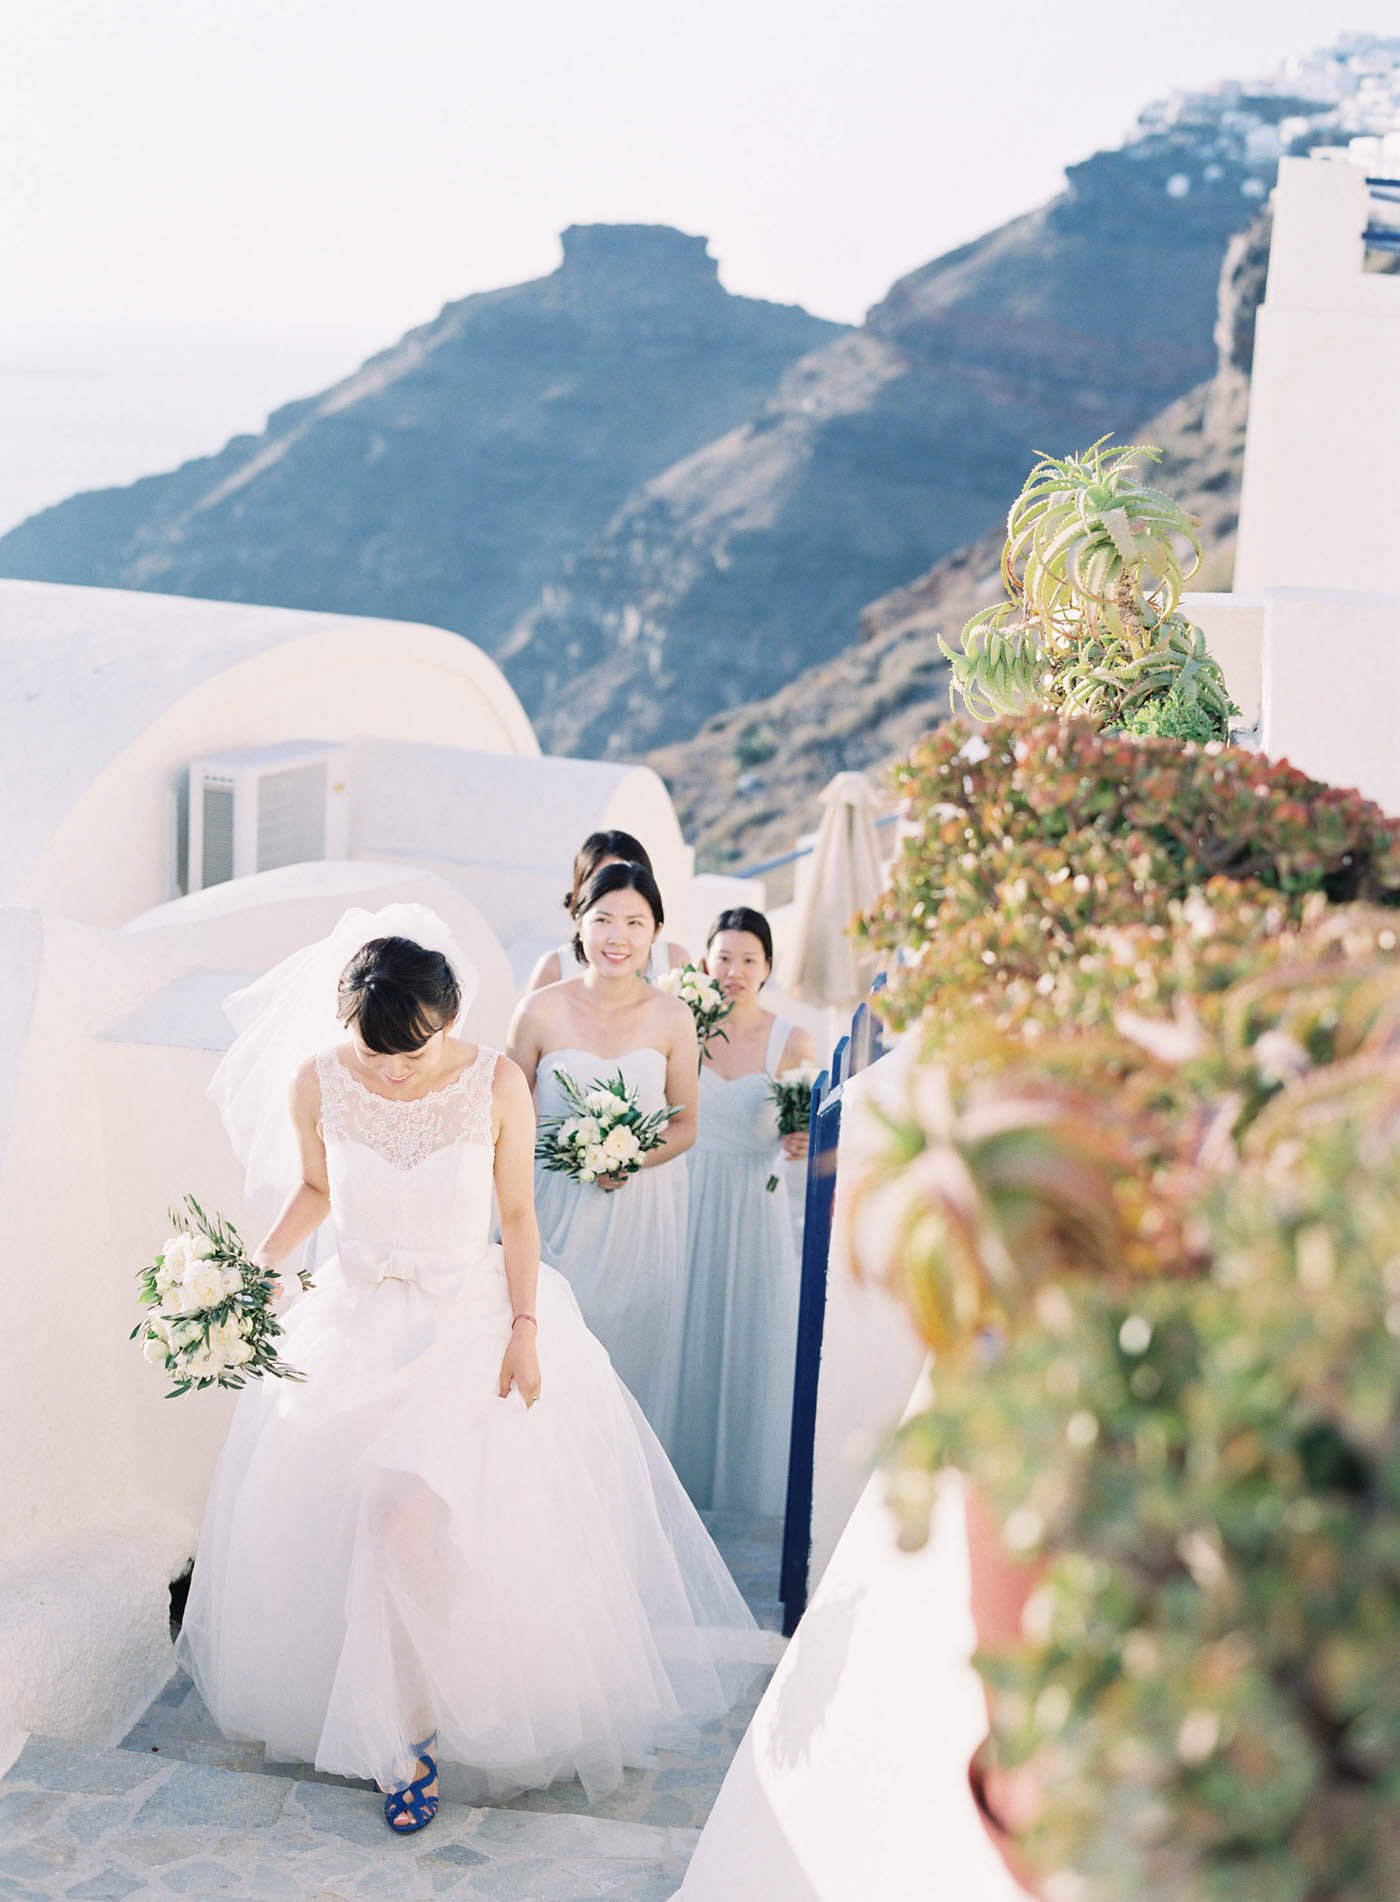 santorini-chinese-wedding-jen-huang-12.jpg